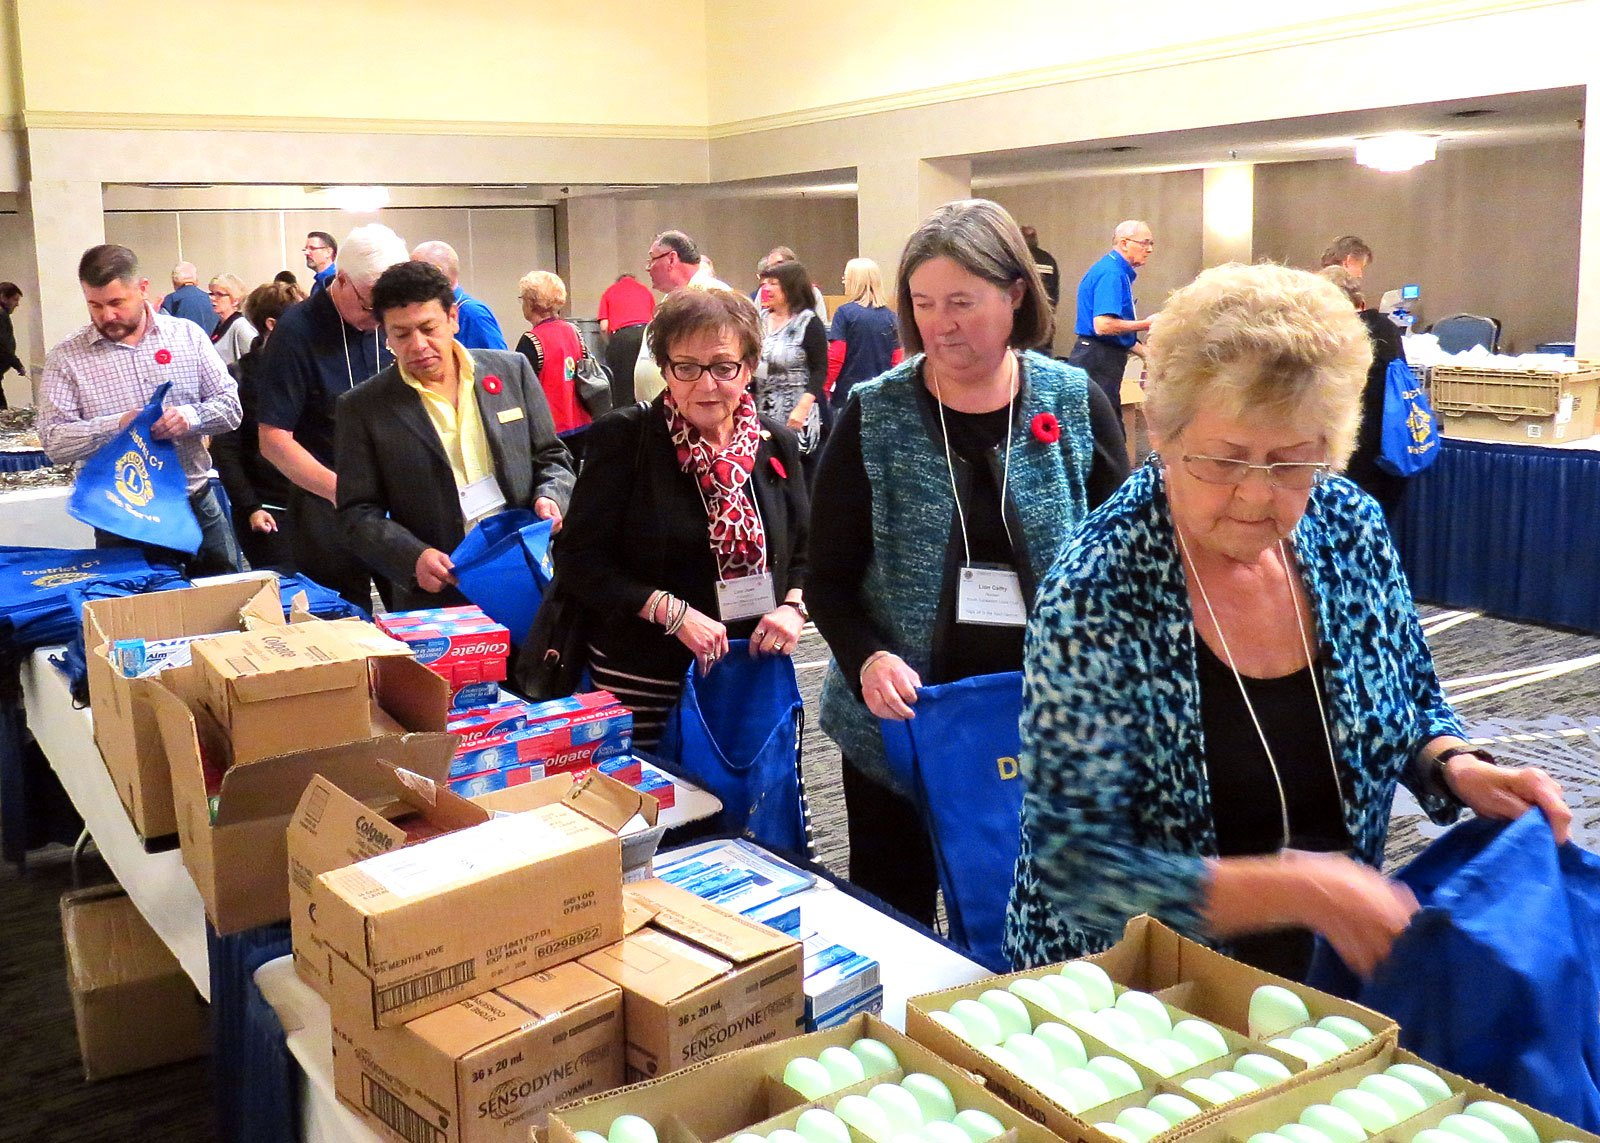 Lions stuffing bags with personal supplies for women's shelters | Nov 2017